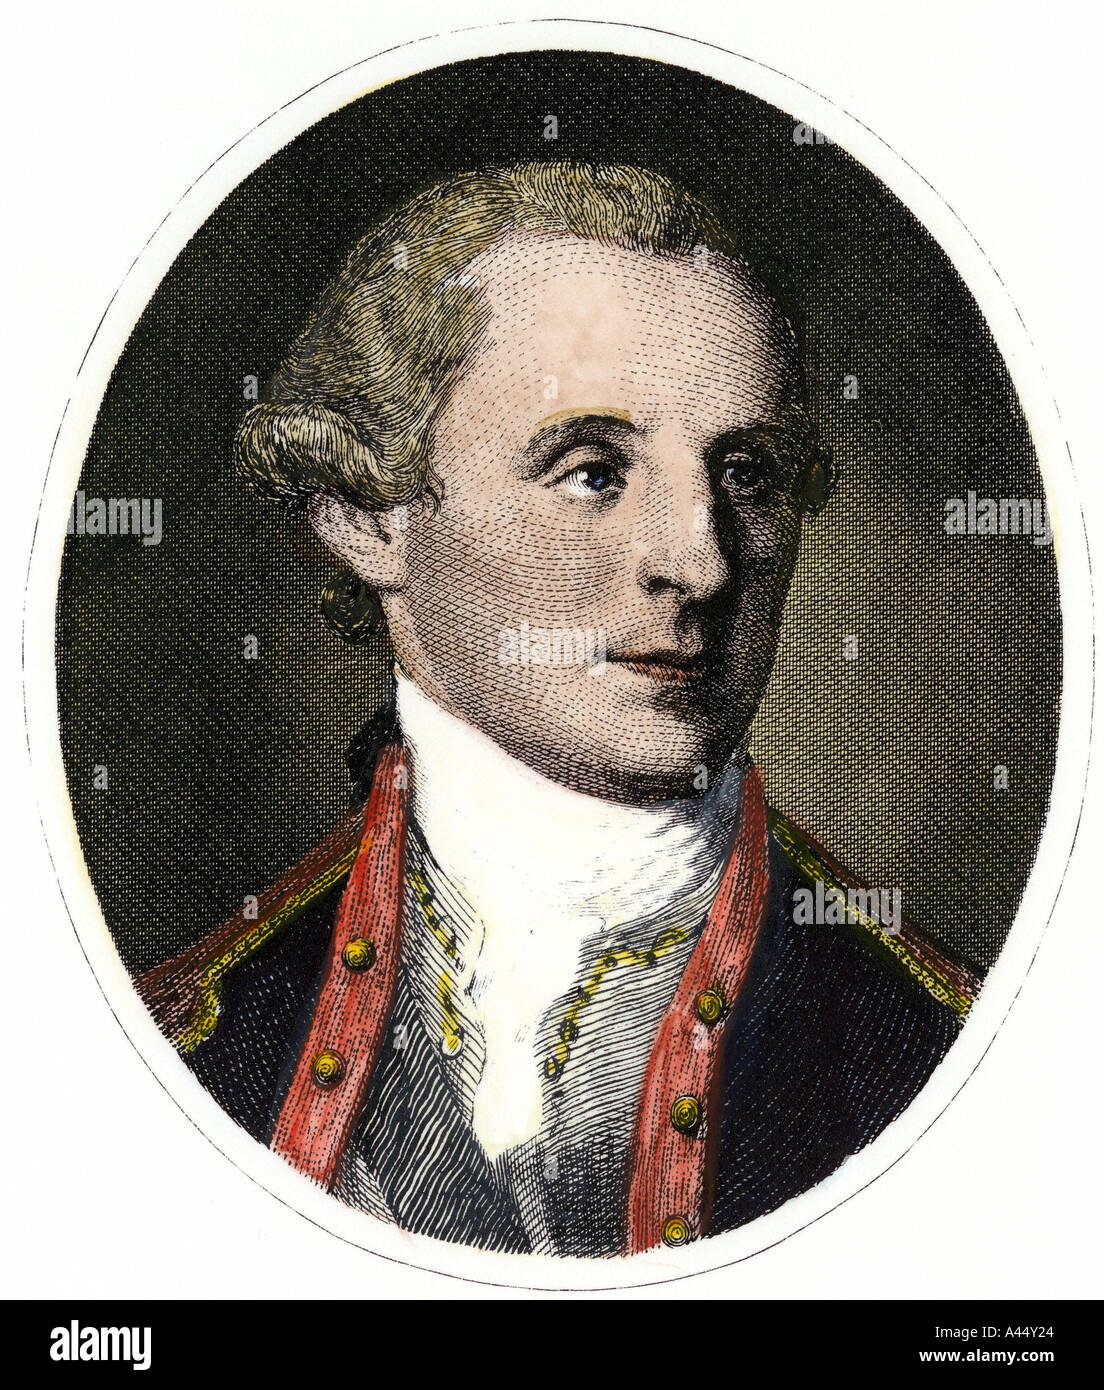 George Washington at age 25 - Stock Image